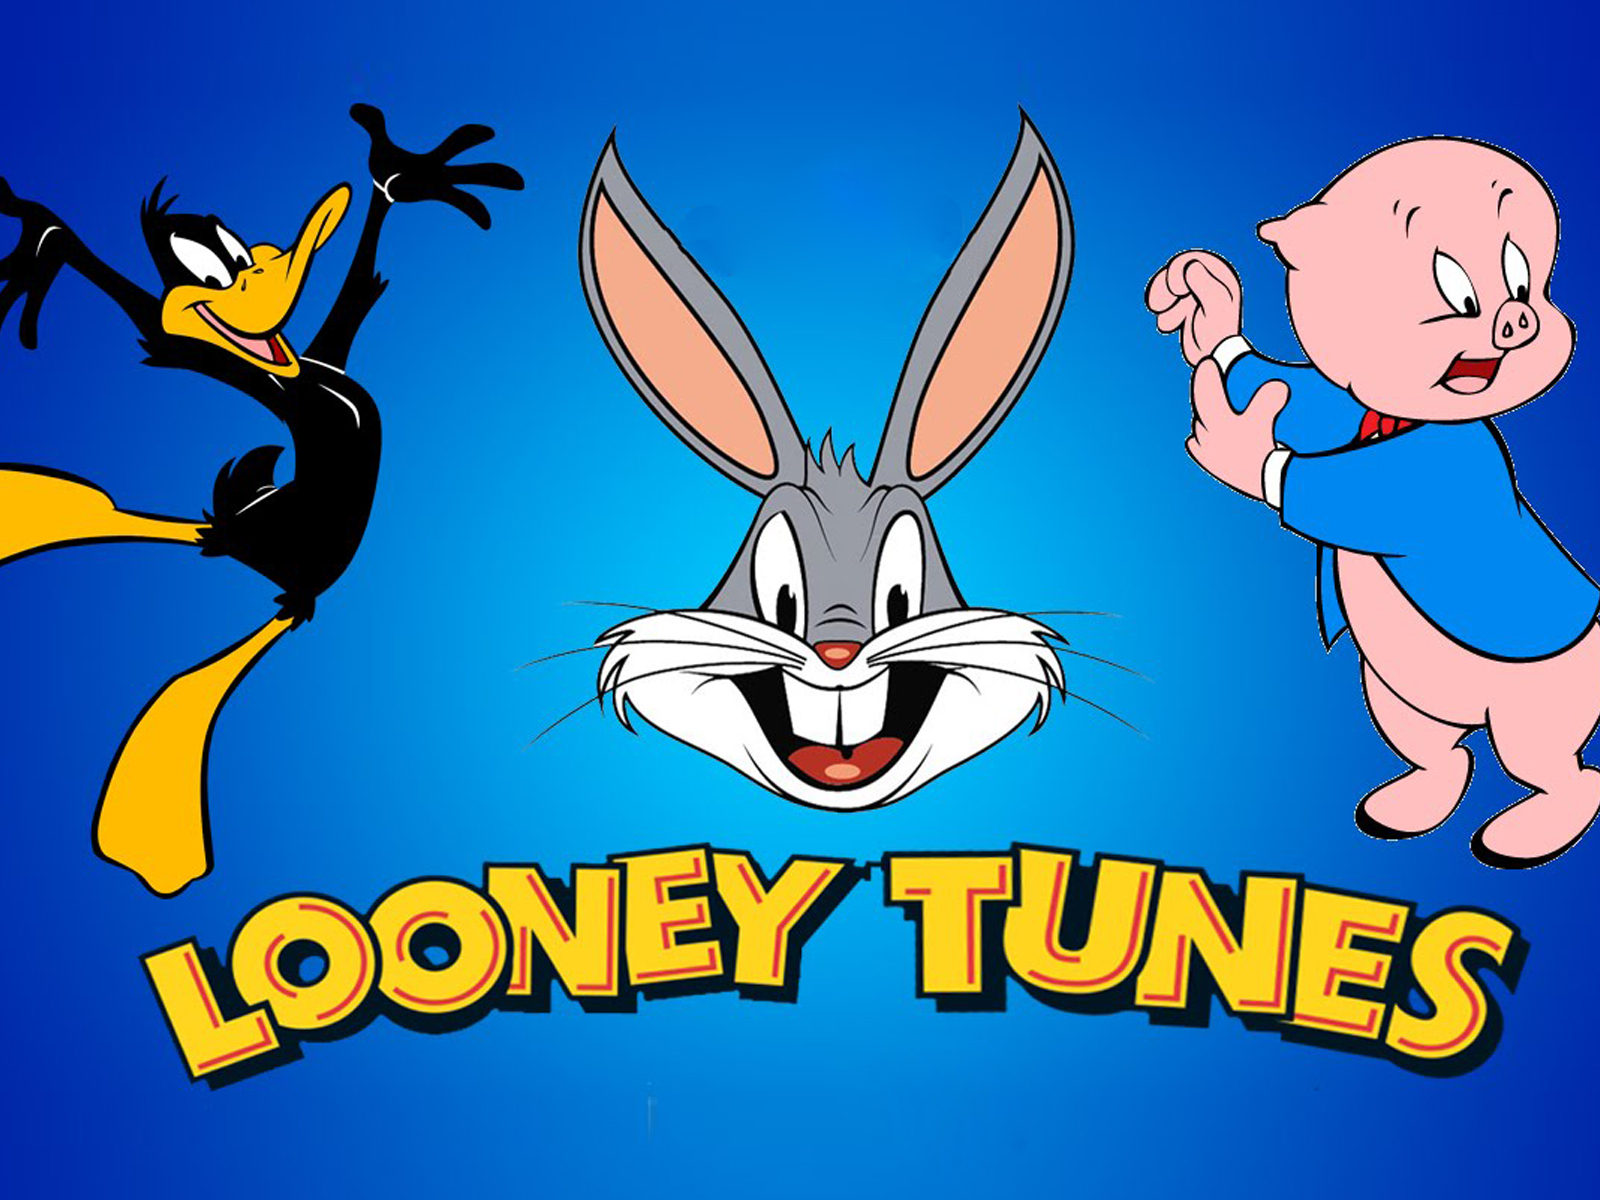 Wile E Coyote Wallpaper Hd Looney Tunes Movie Bugs Bunny Daffy Duck And Porky Pig